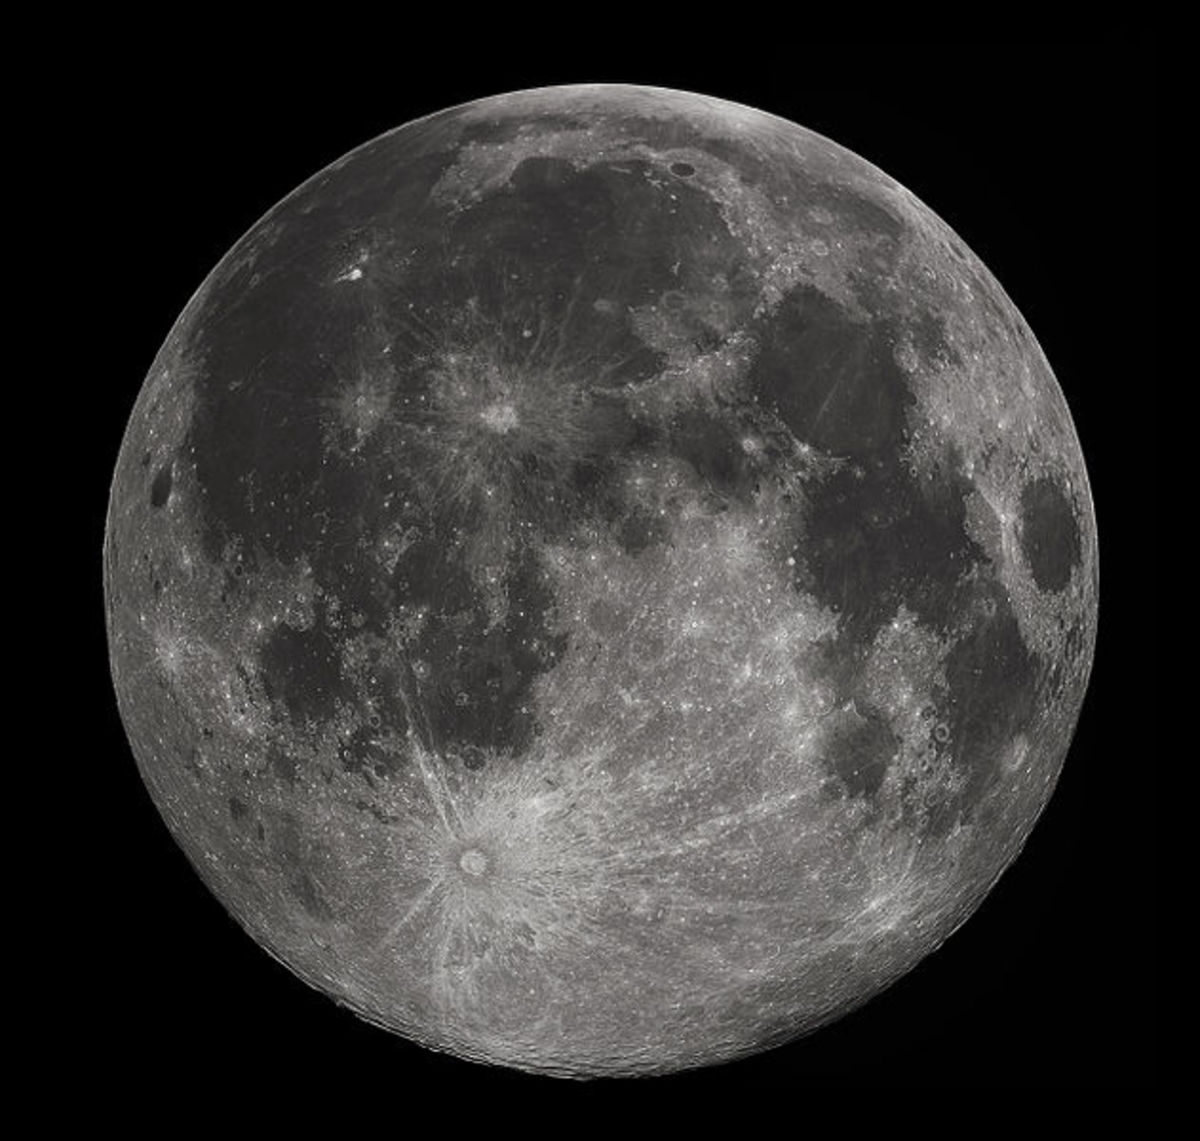 The lunar month is based upon the time taken for the Moon to orbit the Earth exactly once.